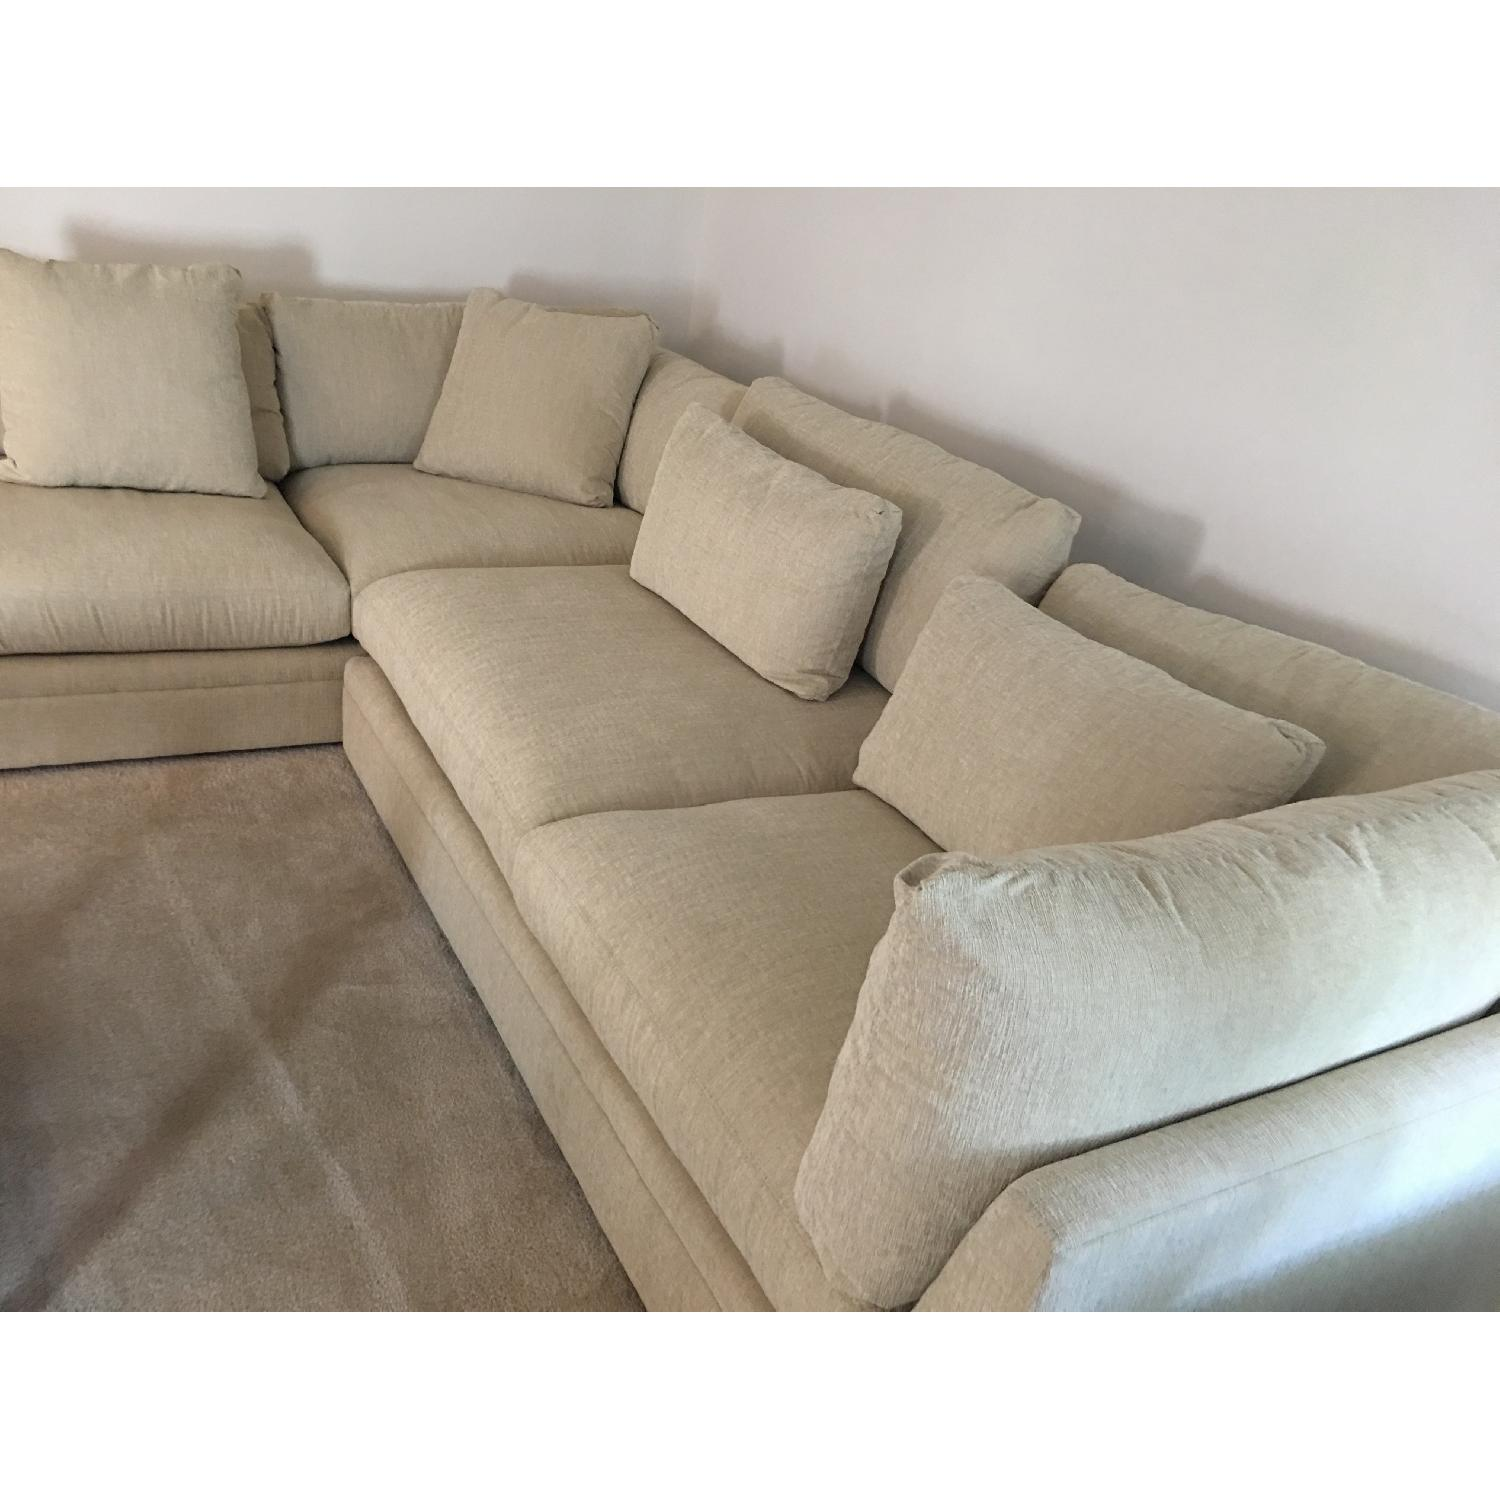 Arhaus Pavo 3 Piece Sectional - image-5